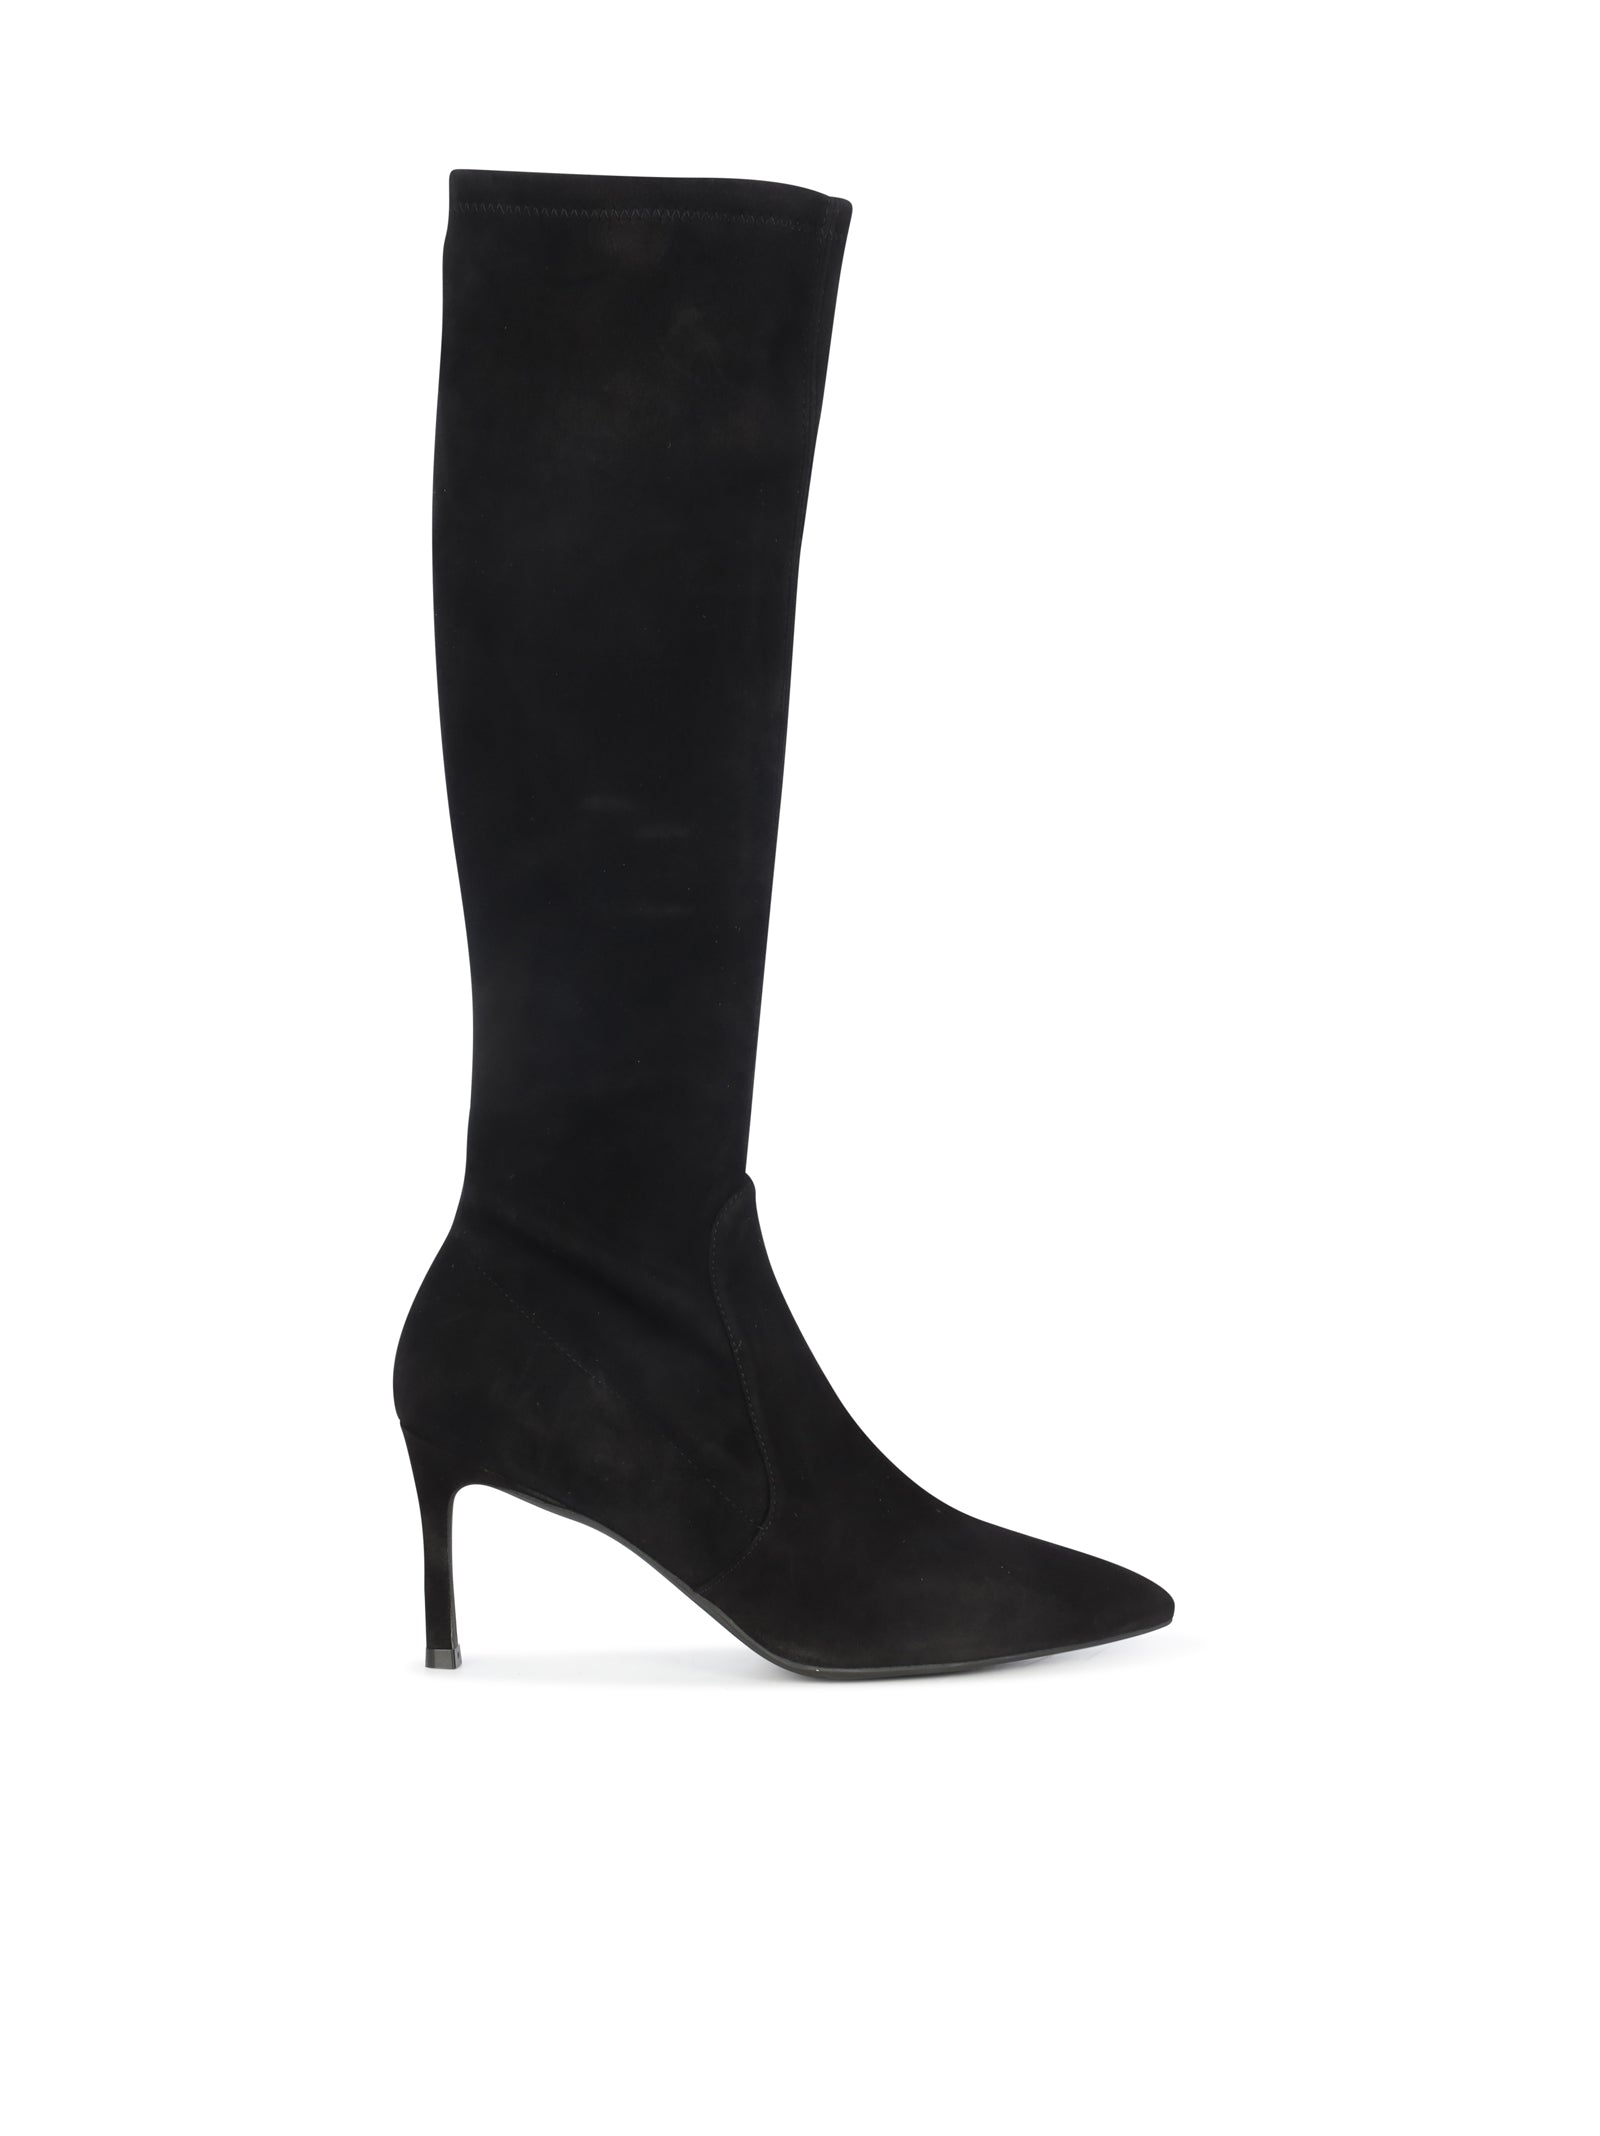 80mm pointed boots